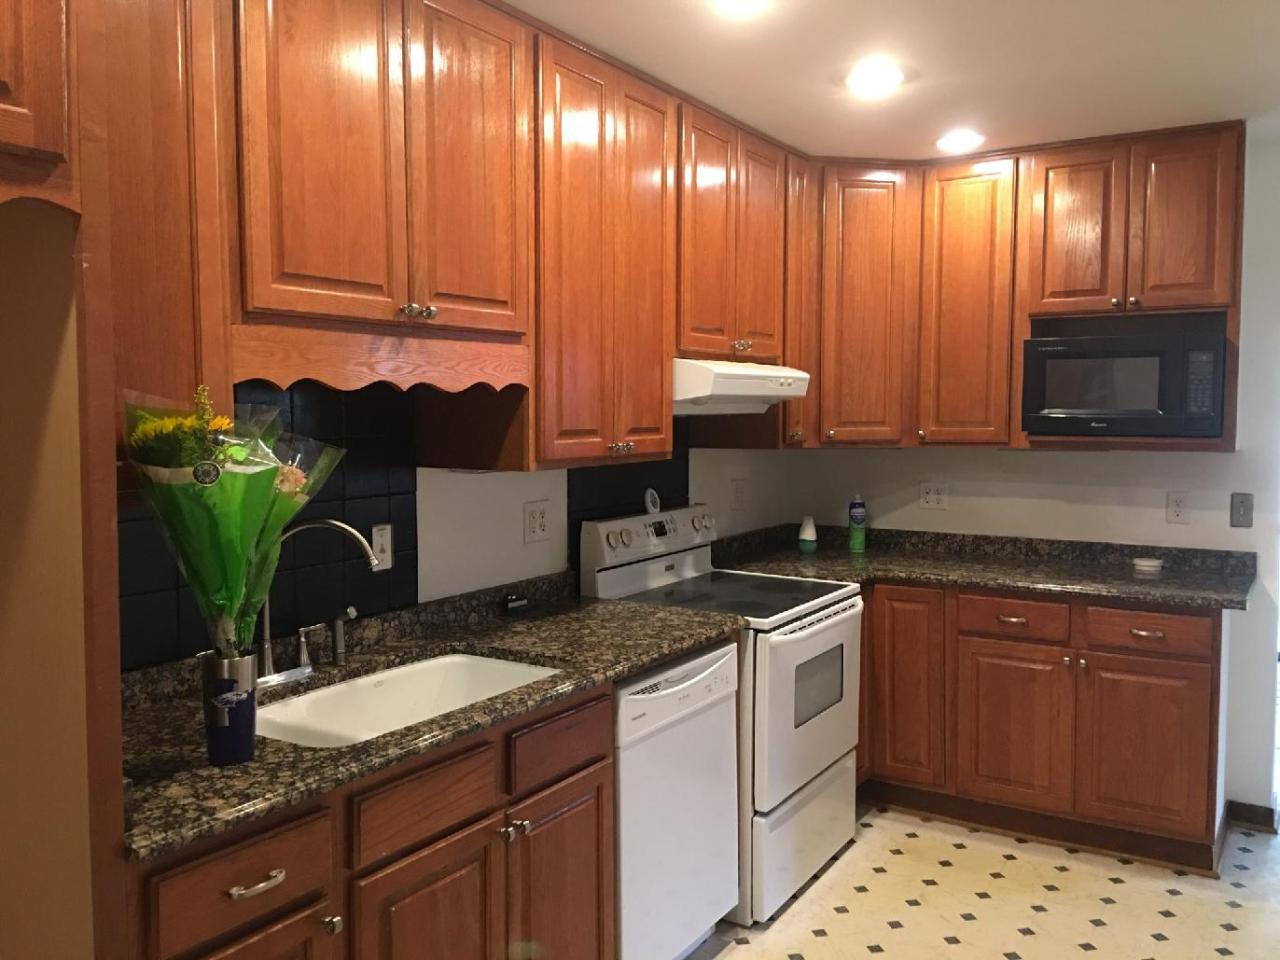 9035 70th St, Milwaukee, Wisconsin 53223, 3 Bedrooms Bedrooms, 6 Rooms Rooms,2 BathroomsBathrooms,Condominiums,For Sale,70th St,1,1754217